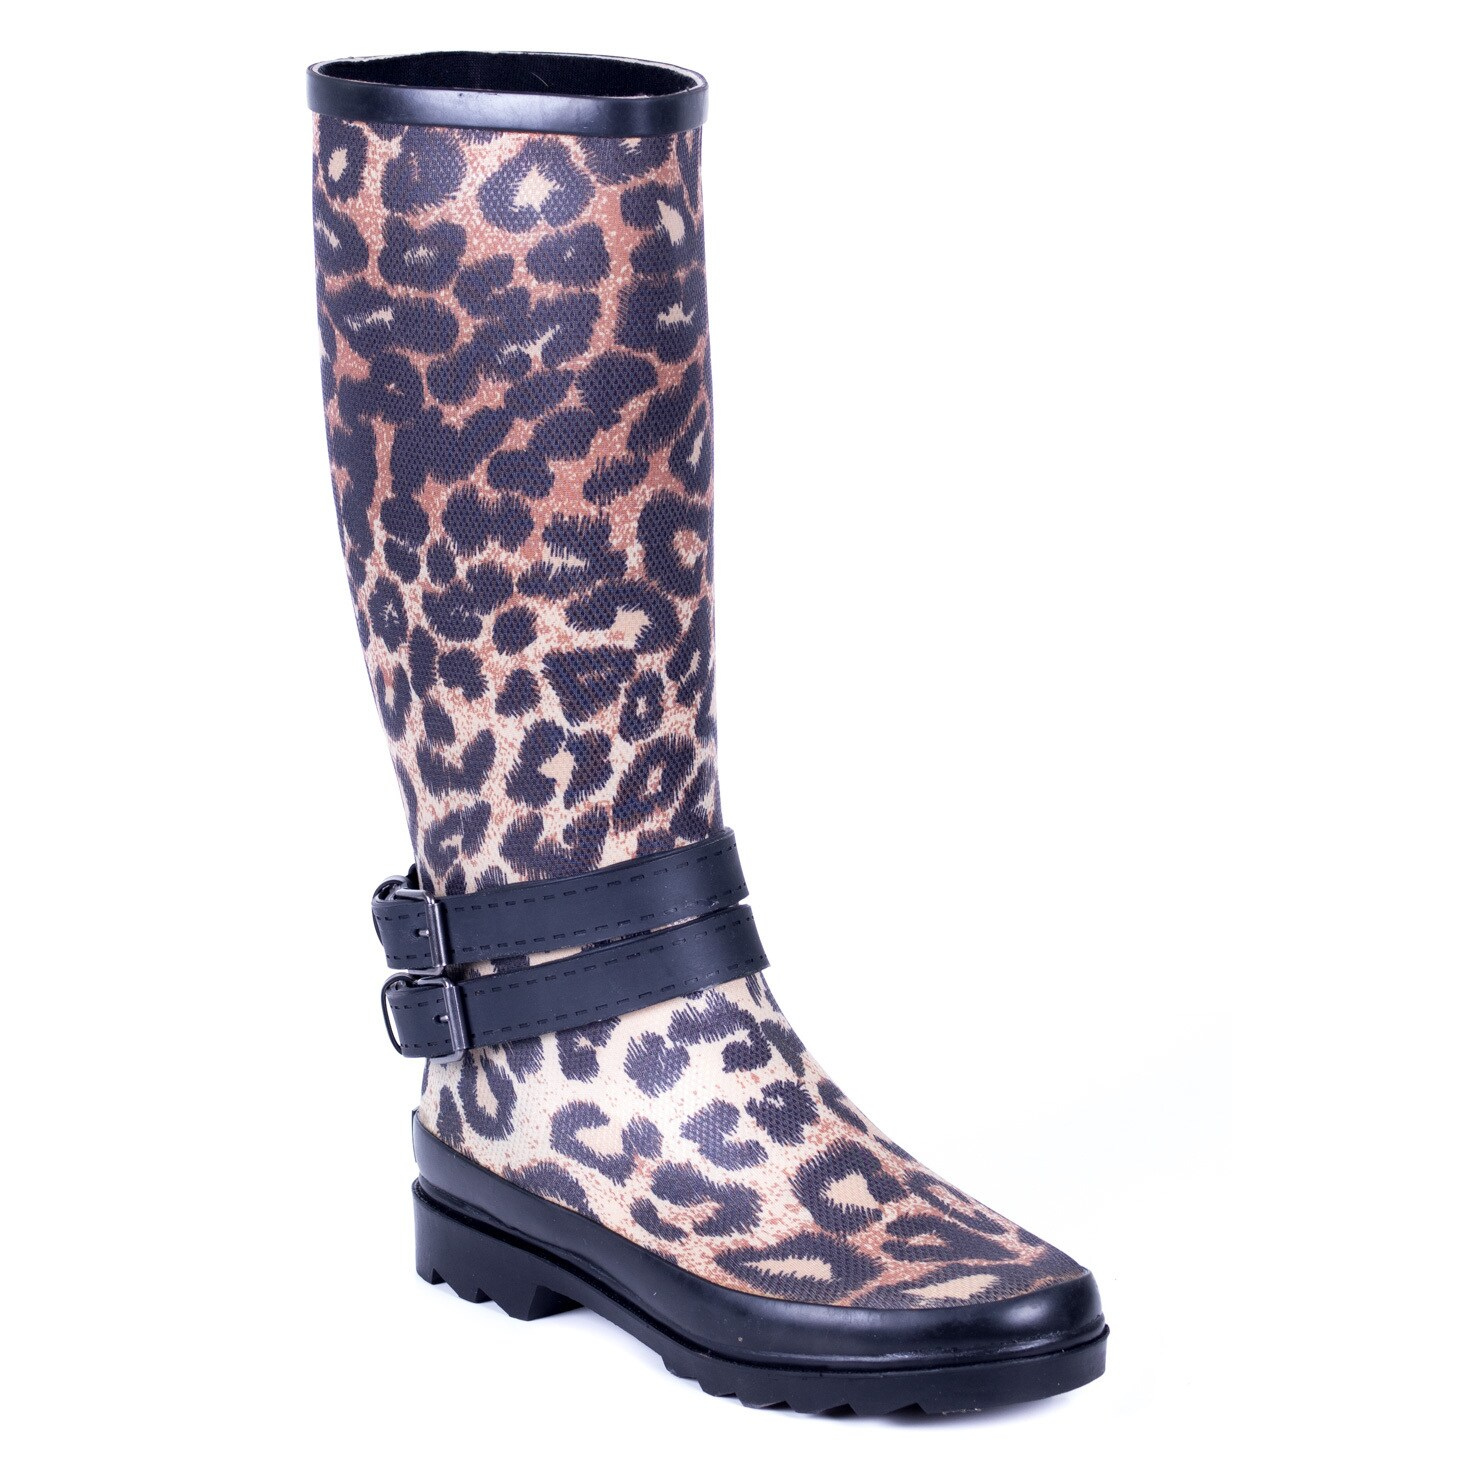 55795181f6e7 Shop Forever Couture Women s Cloth Coating Leopard Print Rubber Rain ...